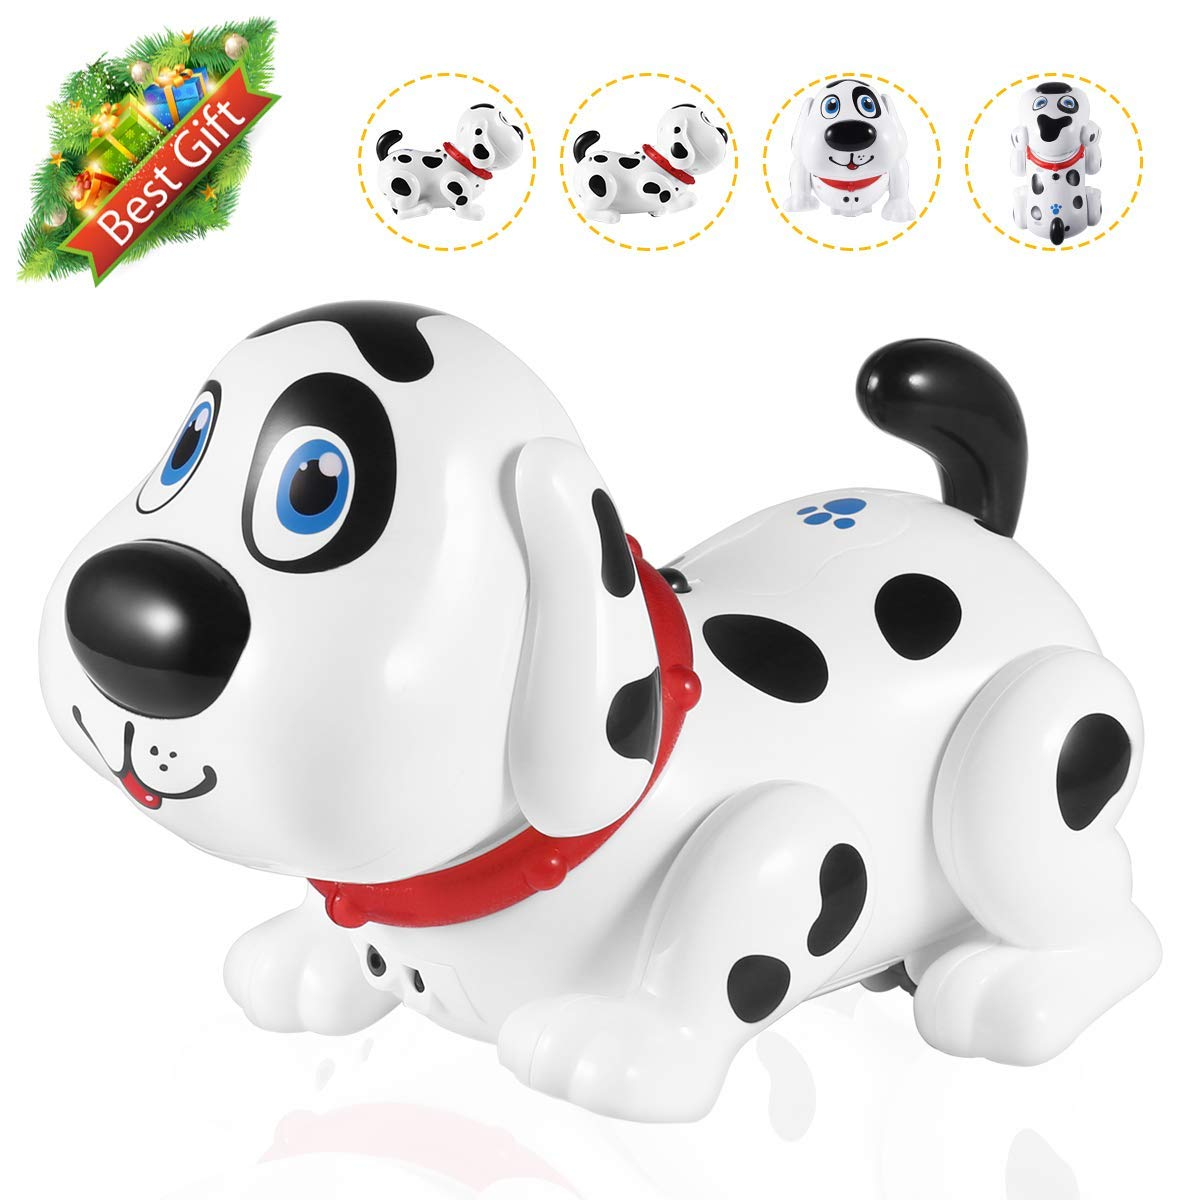 Electronic Dog,Interactive Puppy, Touch with Chasing, Walking, Dancing, Music, Interactive and Induction Toys for Boys or Girls Birthday Gifts by MIGO (Image #1)